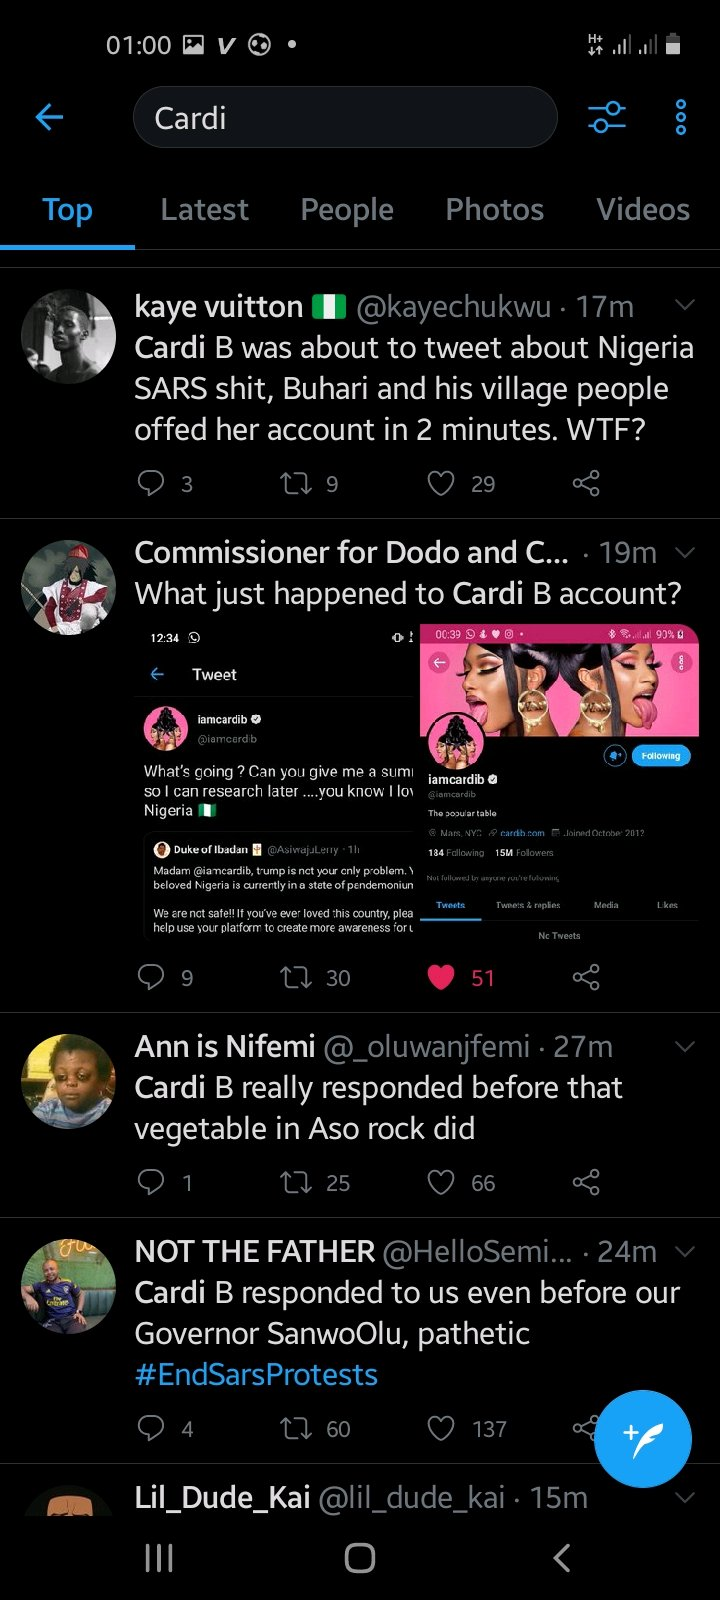 Cardi B's Account Gets Deactivated Moments After She Tweeted #ENDSARS